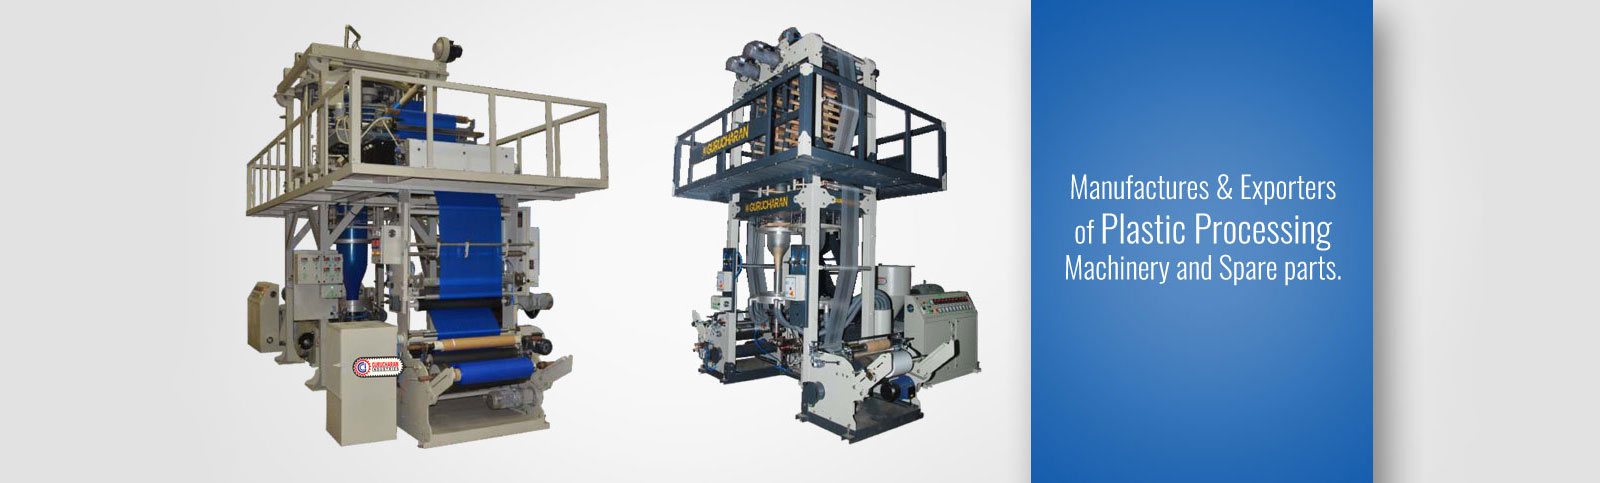 Plastic Processing Machines Manufacturers, Plastic Processing Machinery Manufacturers , Blown Film Excluders Manufacturers, Blown Film Plant Manufacturers, HDPE, LDPE, LDPP, Plastic Processing Machinery Manufacturers  Exporters in India for Quality Product Manufacturers